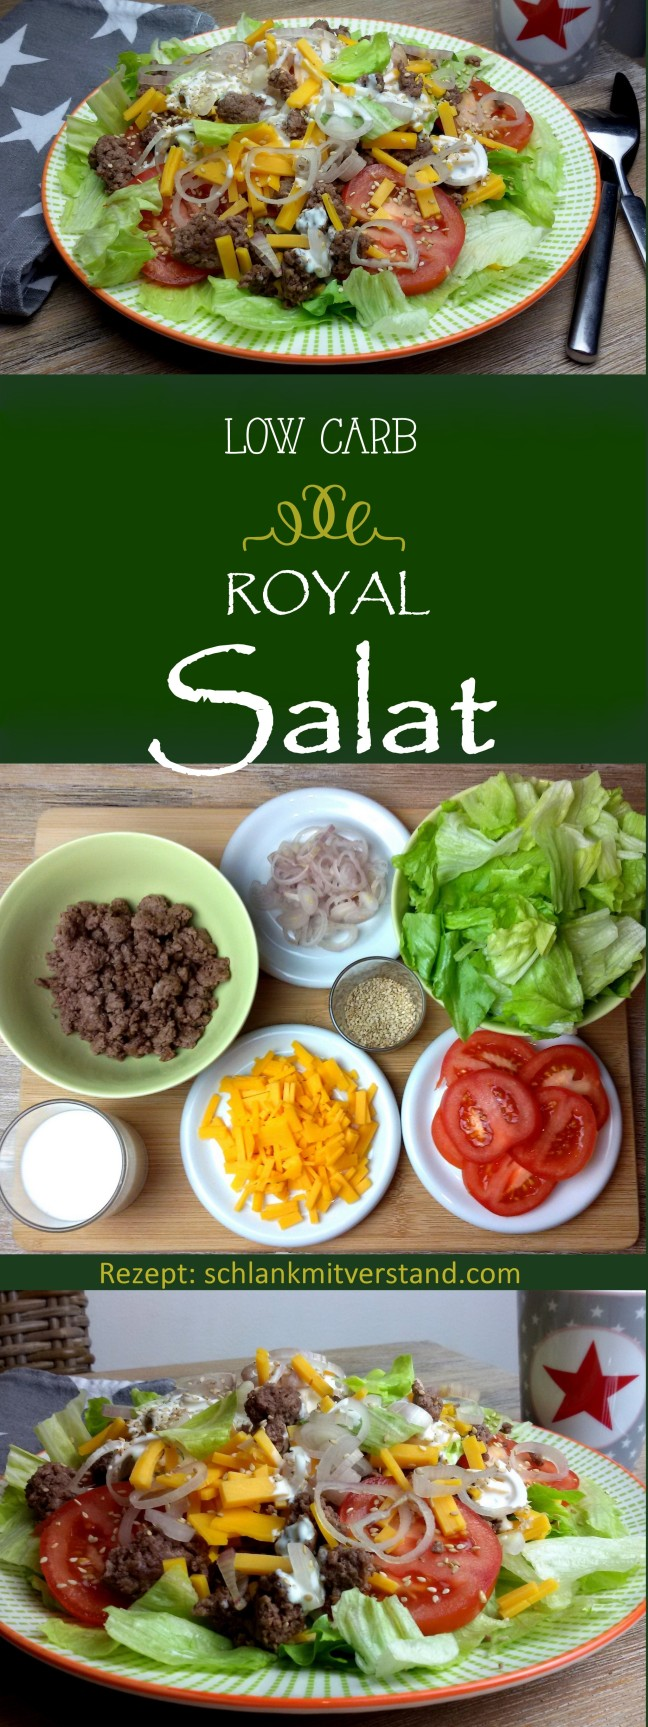 low carb Royal Salat